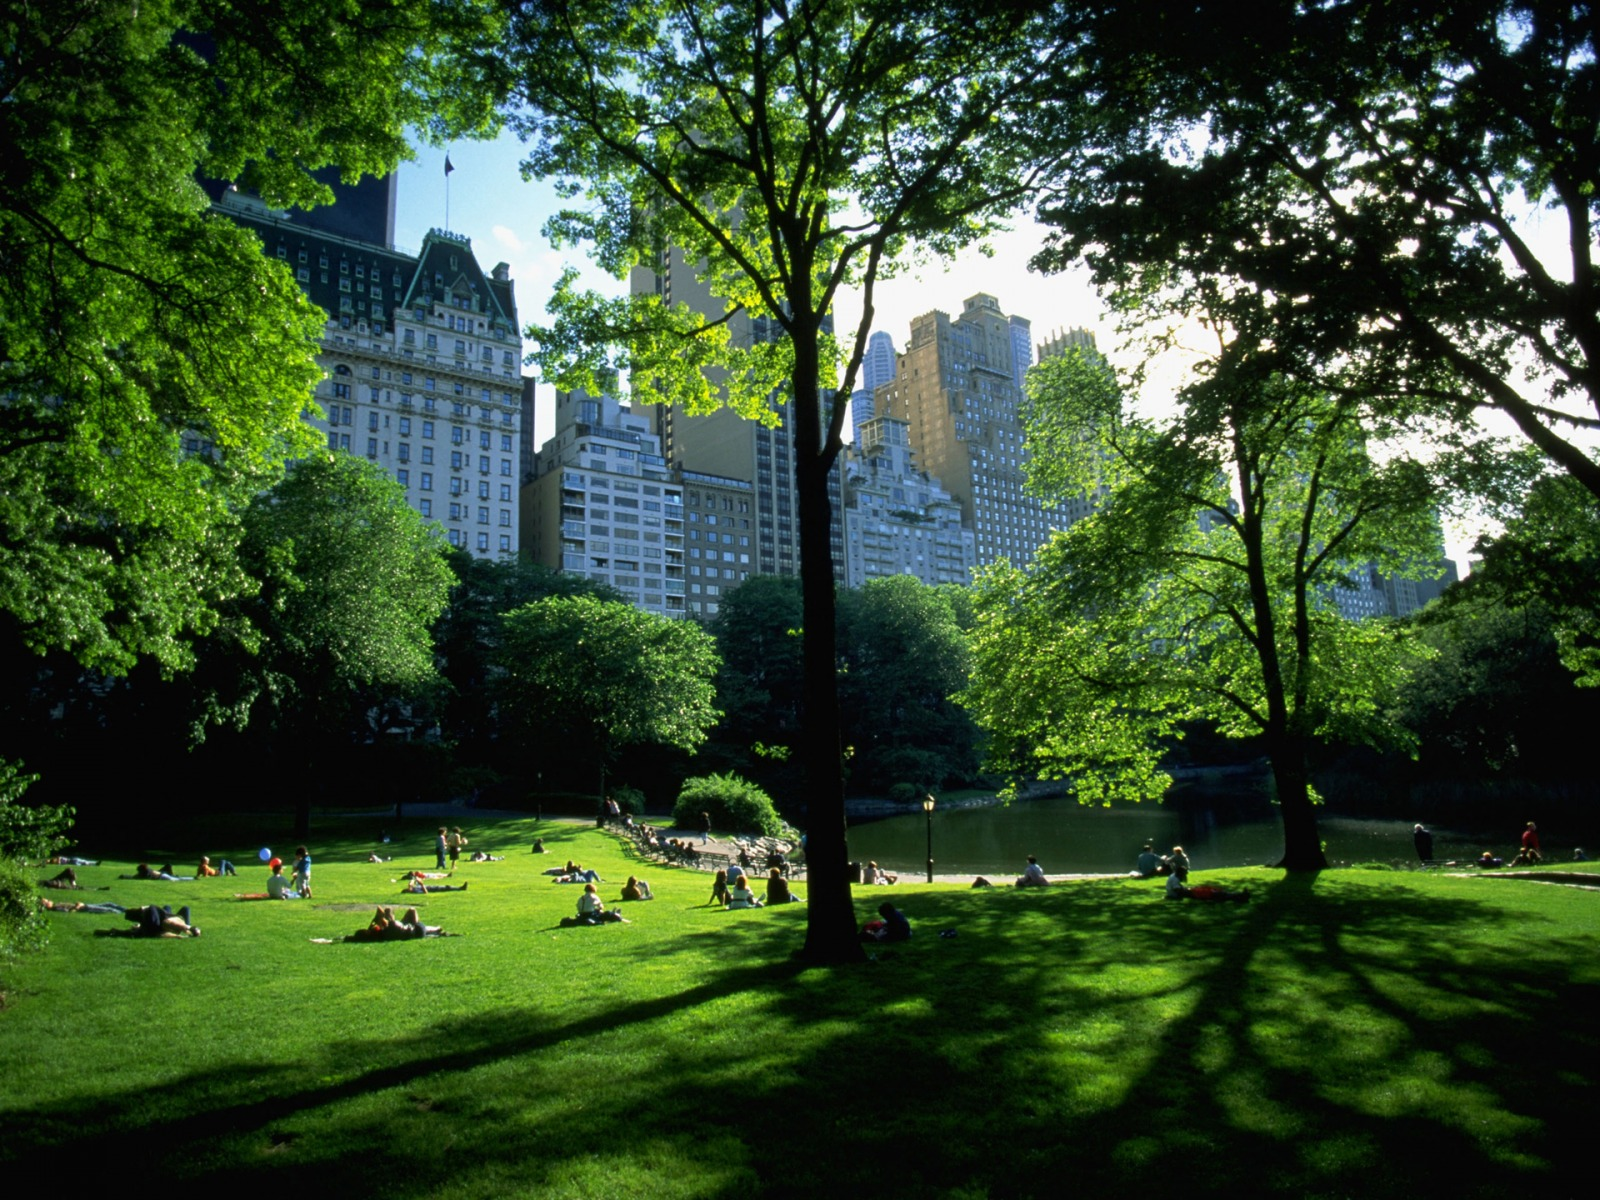 Imelda mcconnell central park background for Central park wallpaper